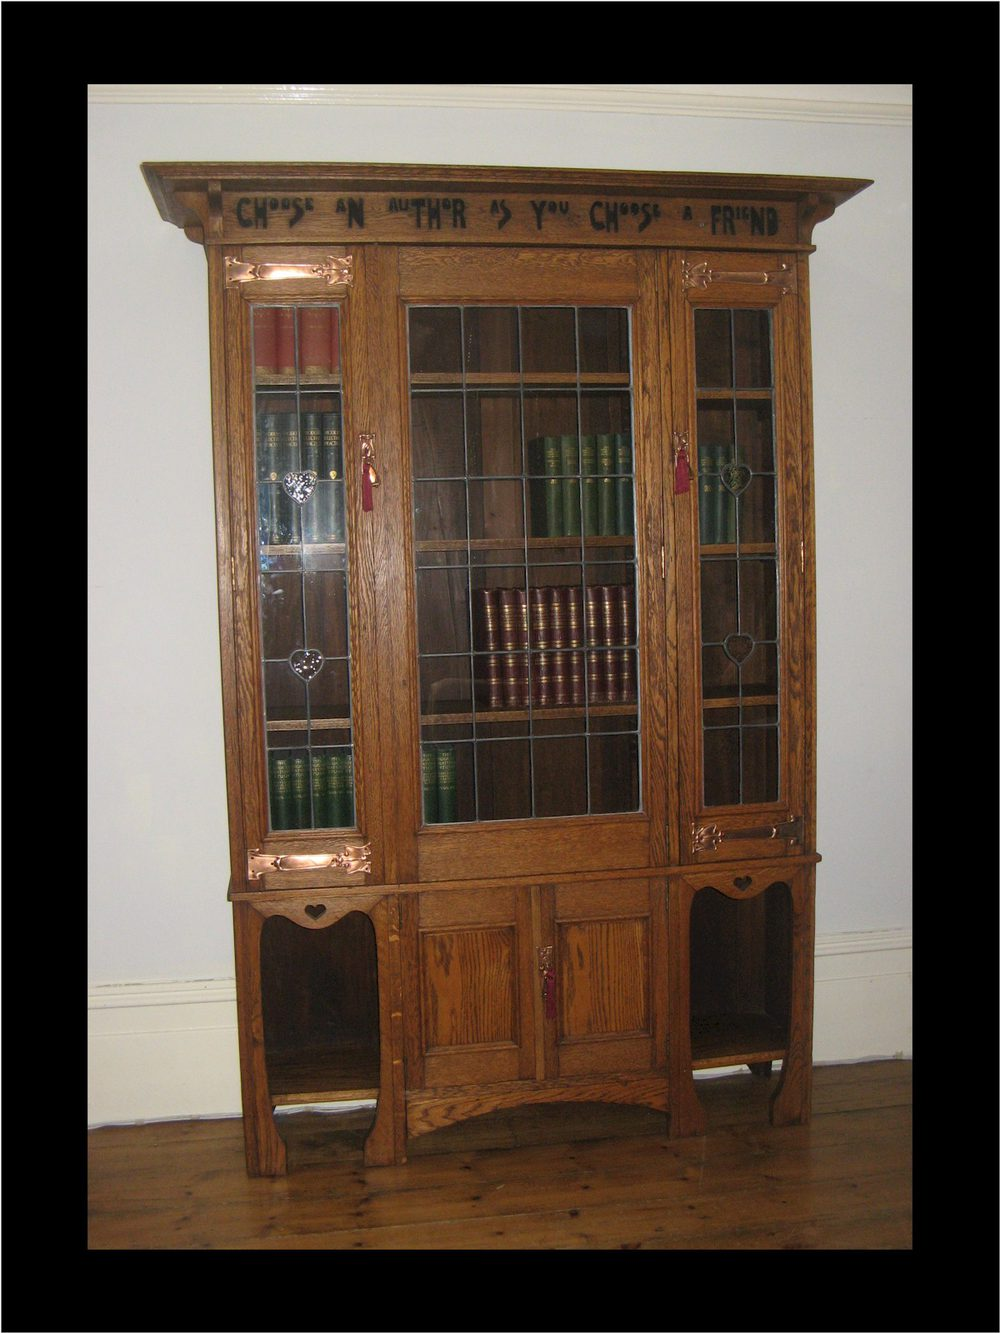 Antique arts and crafts furniture - Arts And Crafts Oak Glazed Bookcase With Motto Antique Glazed Bookcases Arts And Crafts Oak